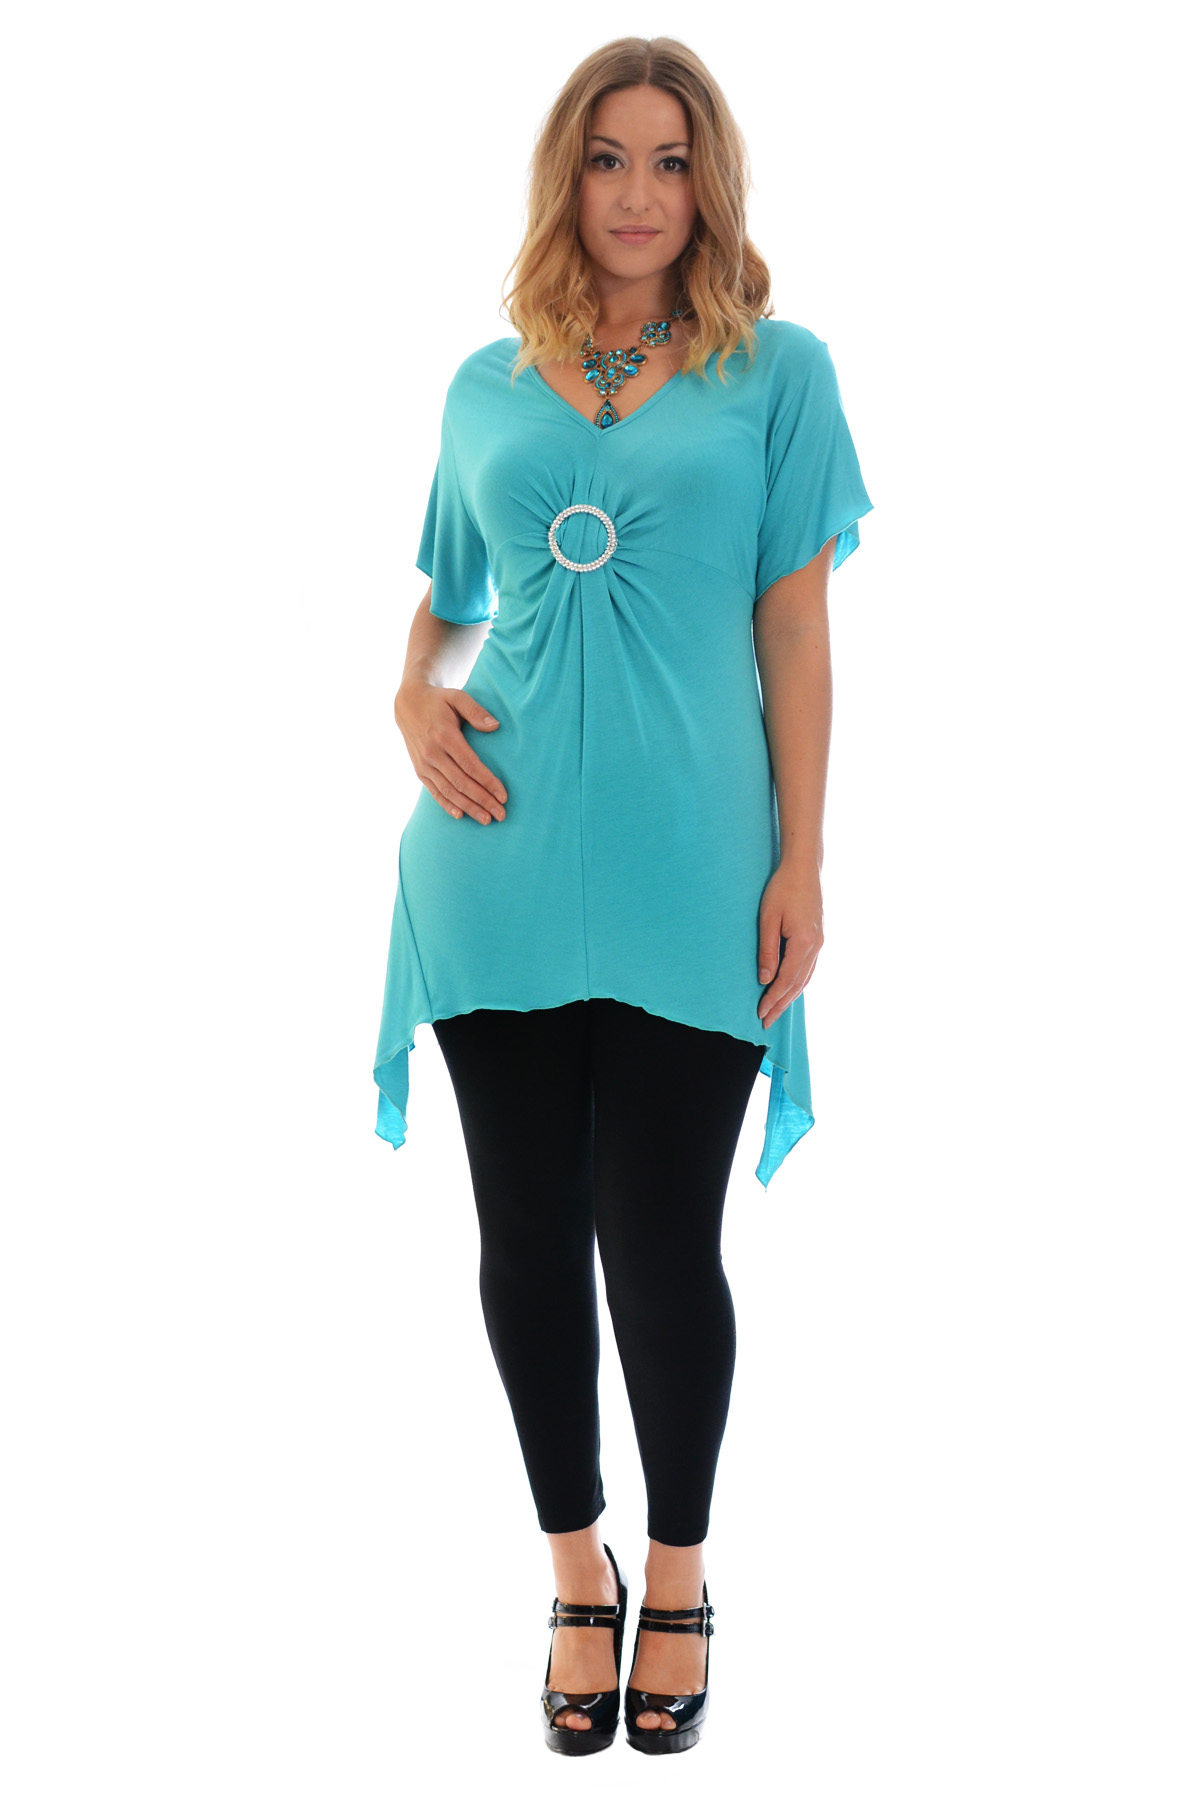 New-Womens-Plus-Size-Top-Ladies-T-Shirt-Buckle-Stud-A-Line-Asymmetric-Nouvelle thumbnail 70